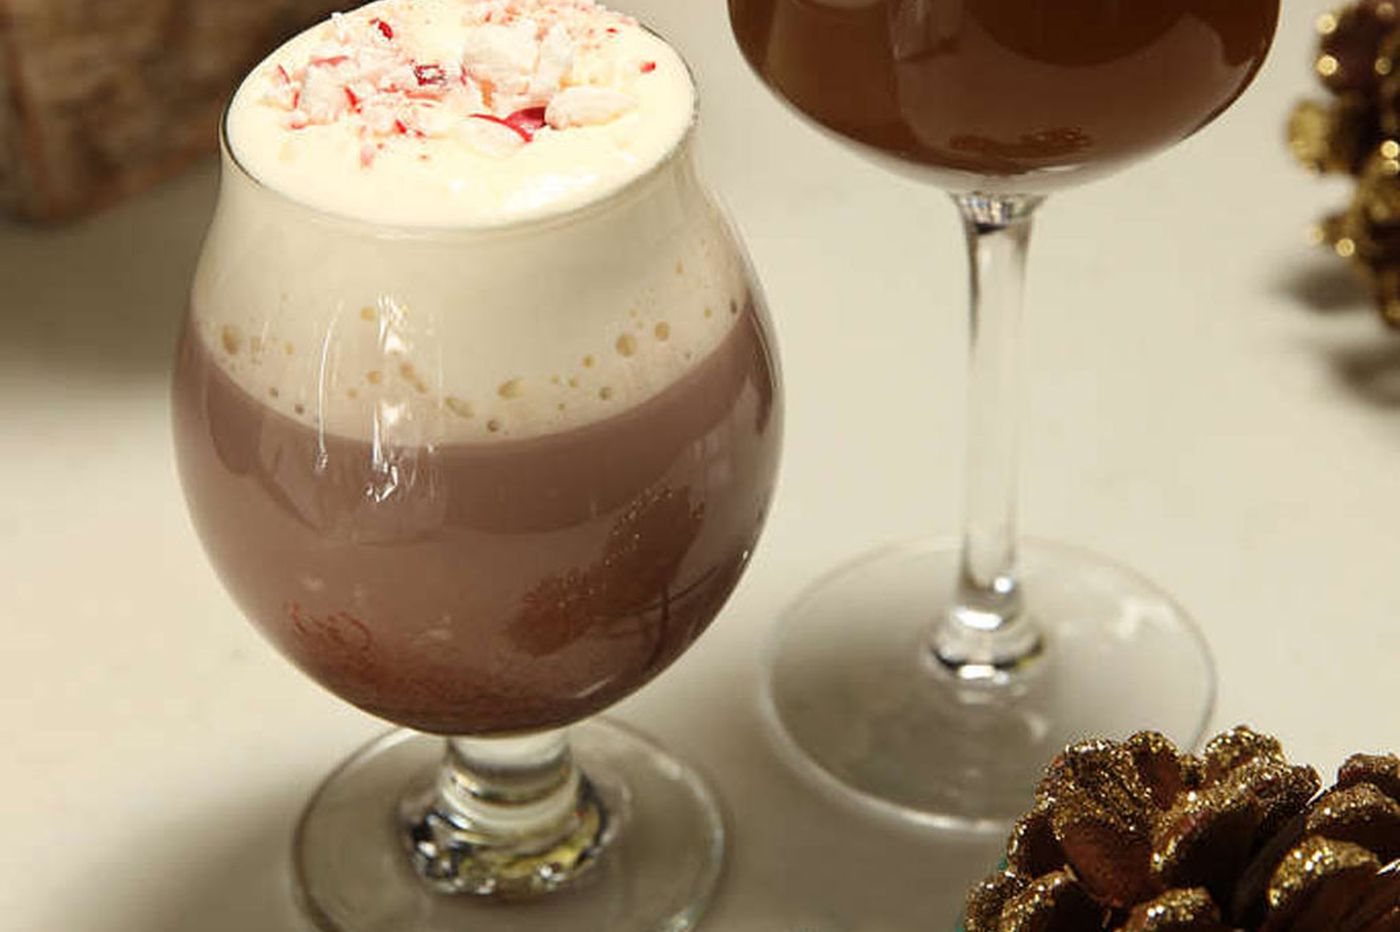 Be creative with holiday cocktails, mocktails